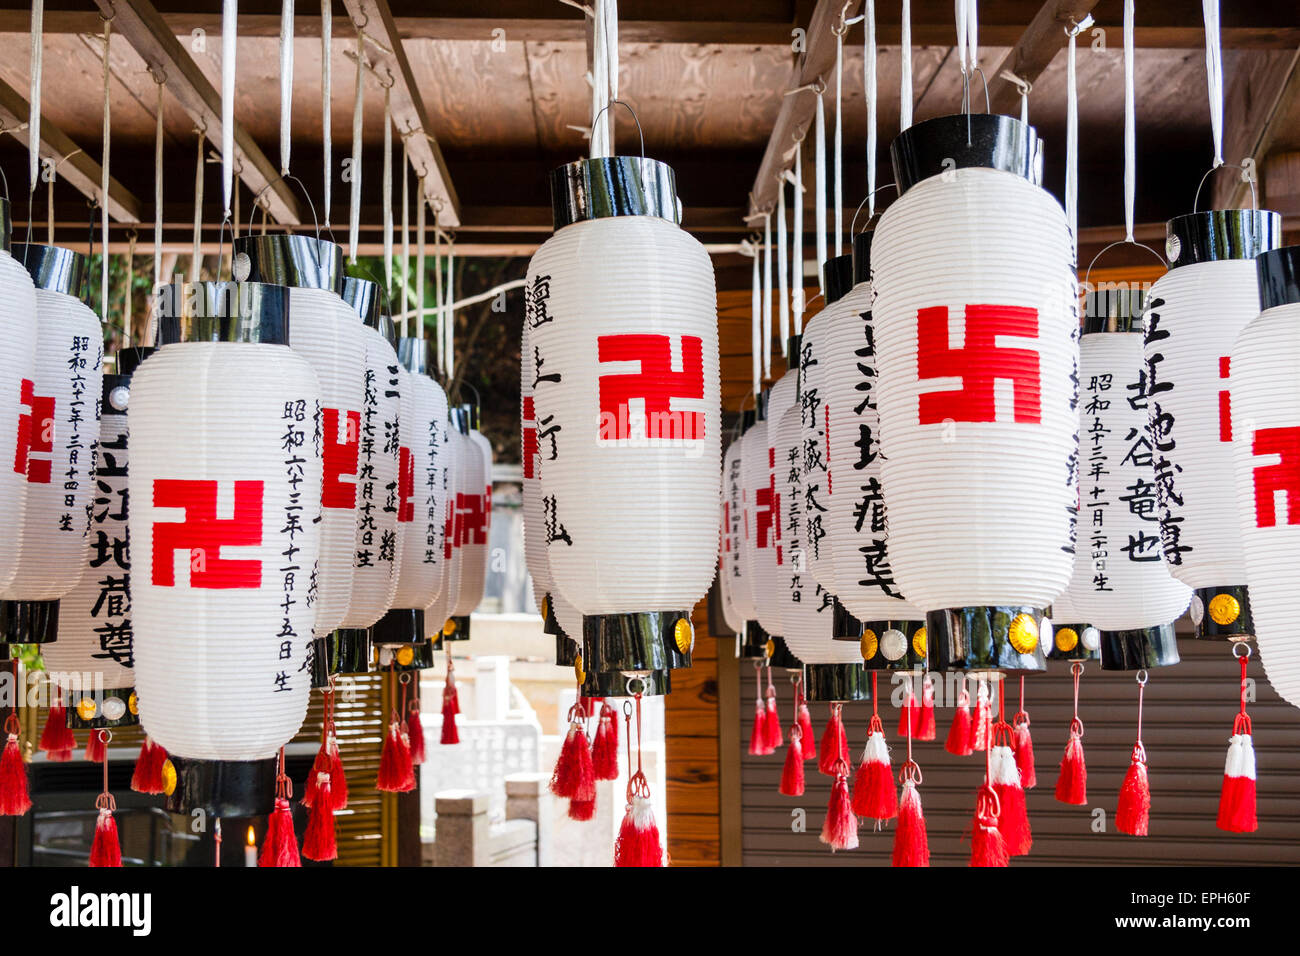 Image result for japanese mass in front of swastika